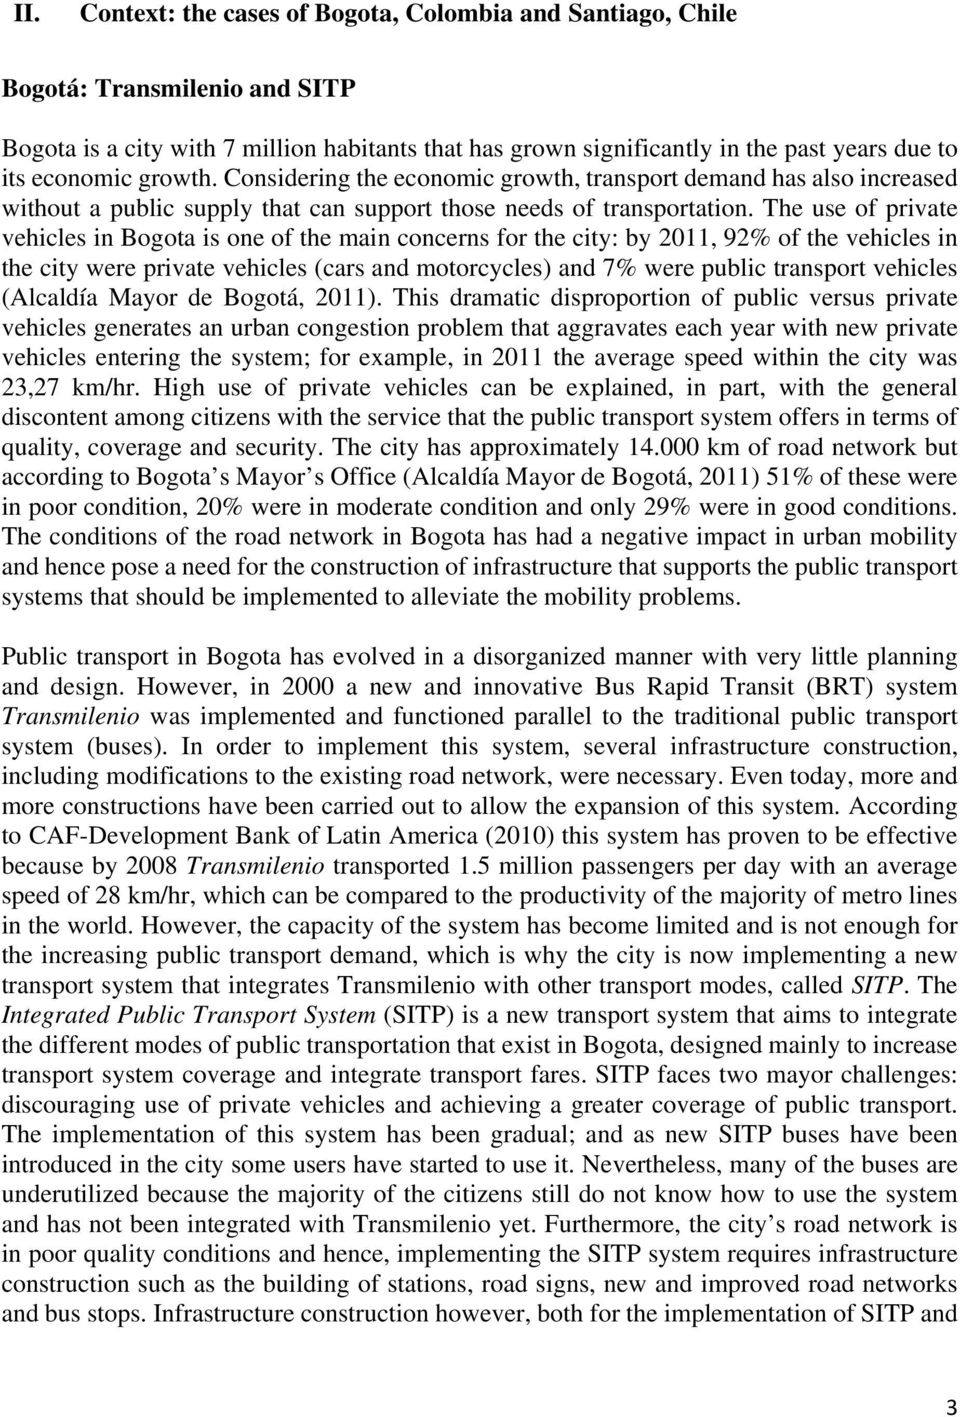 The use of private vehicles in Bogota is one of the main concerns for the city: by 2011, 92% of the vehicles in the city were private vehicles (cars and motorcycles) and 7% were public transport